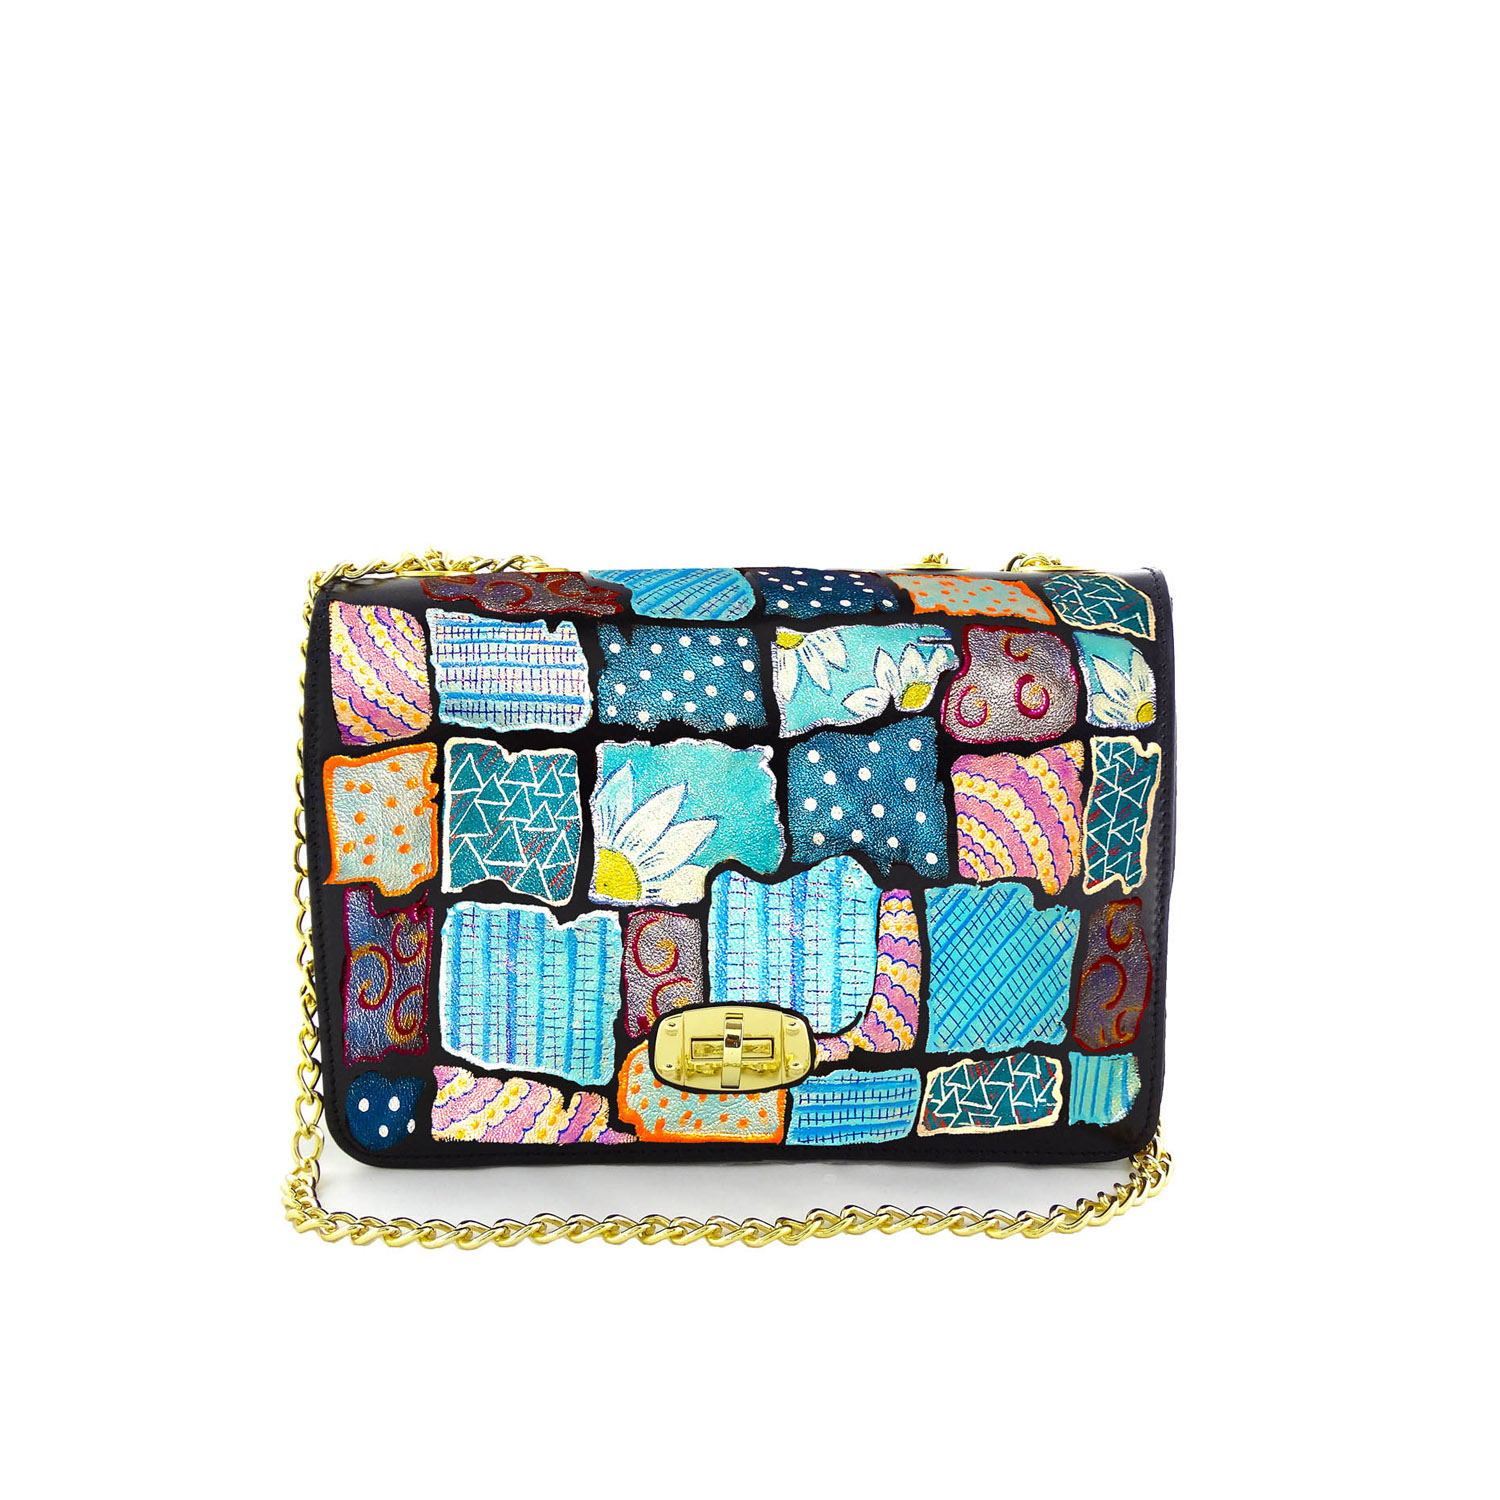 Hand painted bag - Patchwork